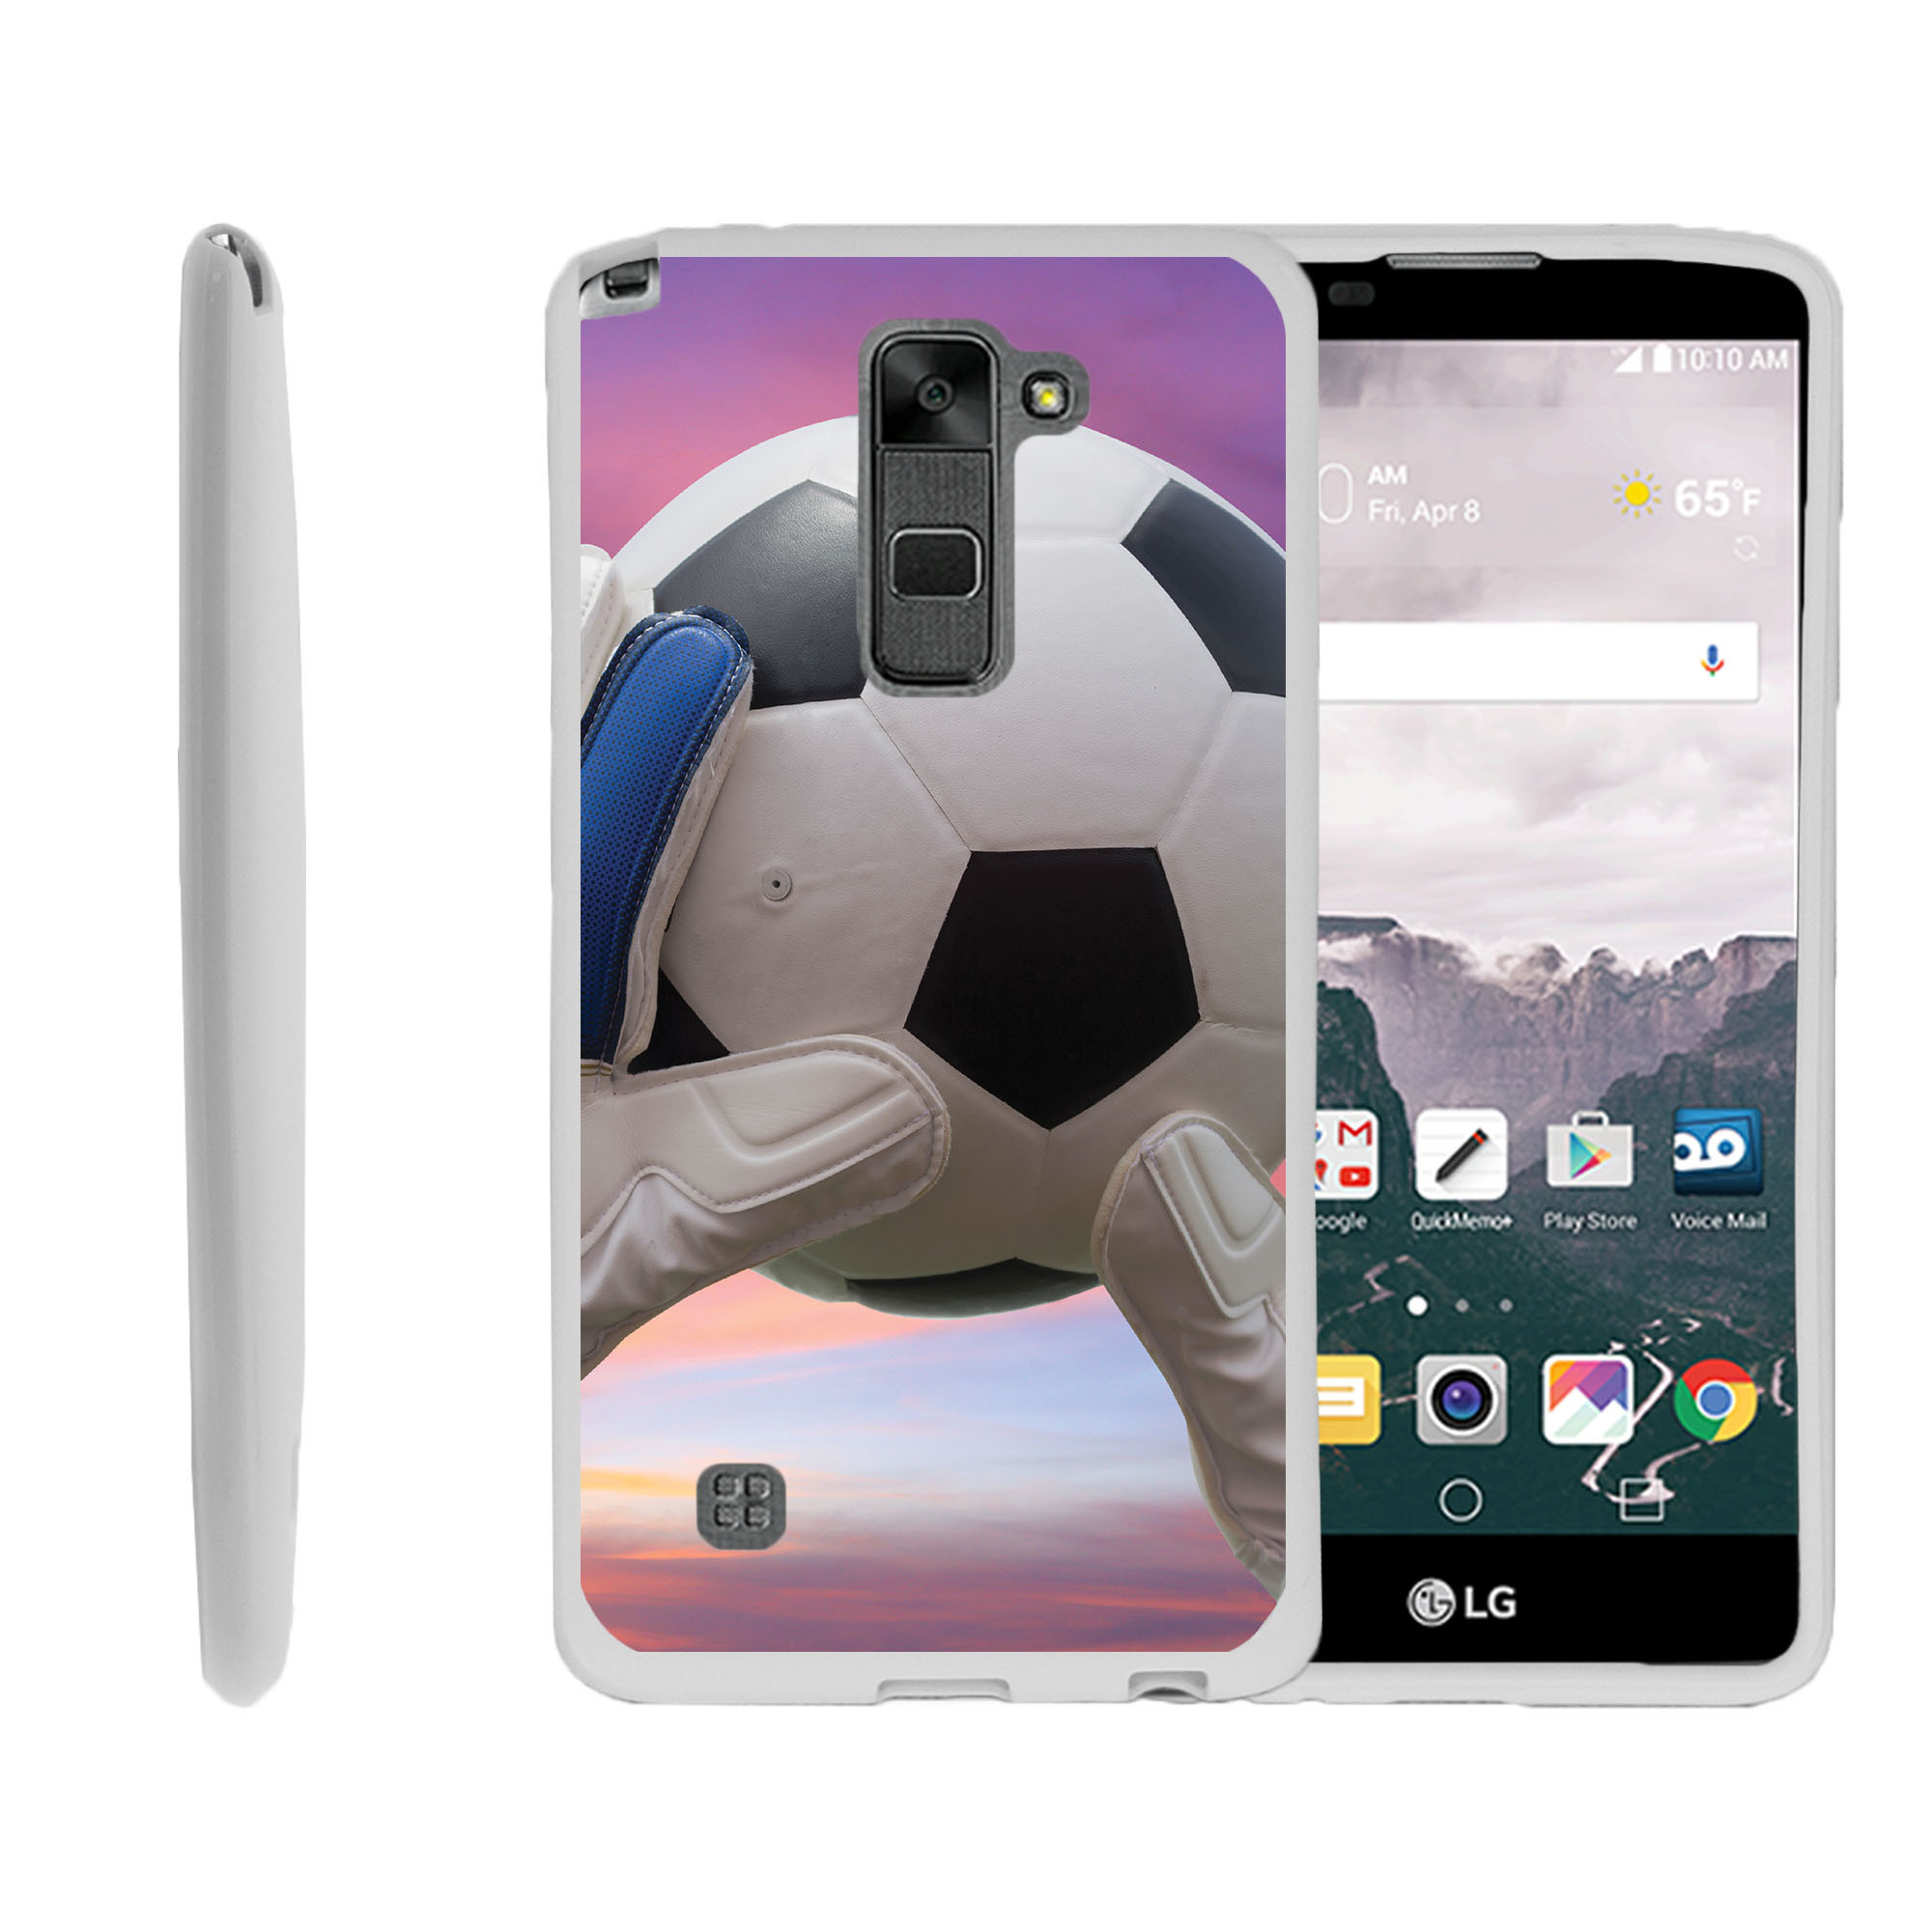 LG G Stylo 2, LG G Stylus 2 LS775, Flexible Case [FLEX FORCE] Slim Durable TPU Sleek Bumper with Unique Designs - Soccer Ball and Goalie